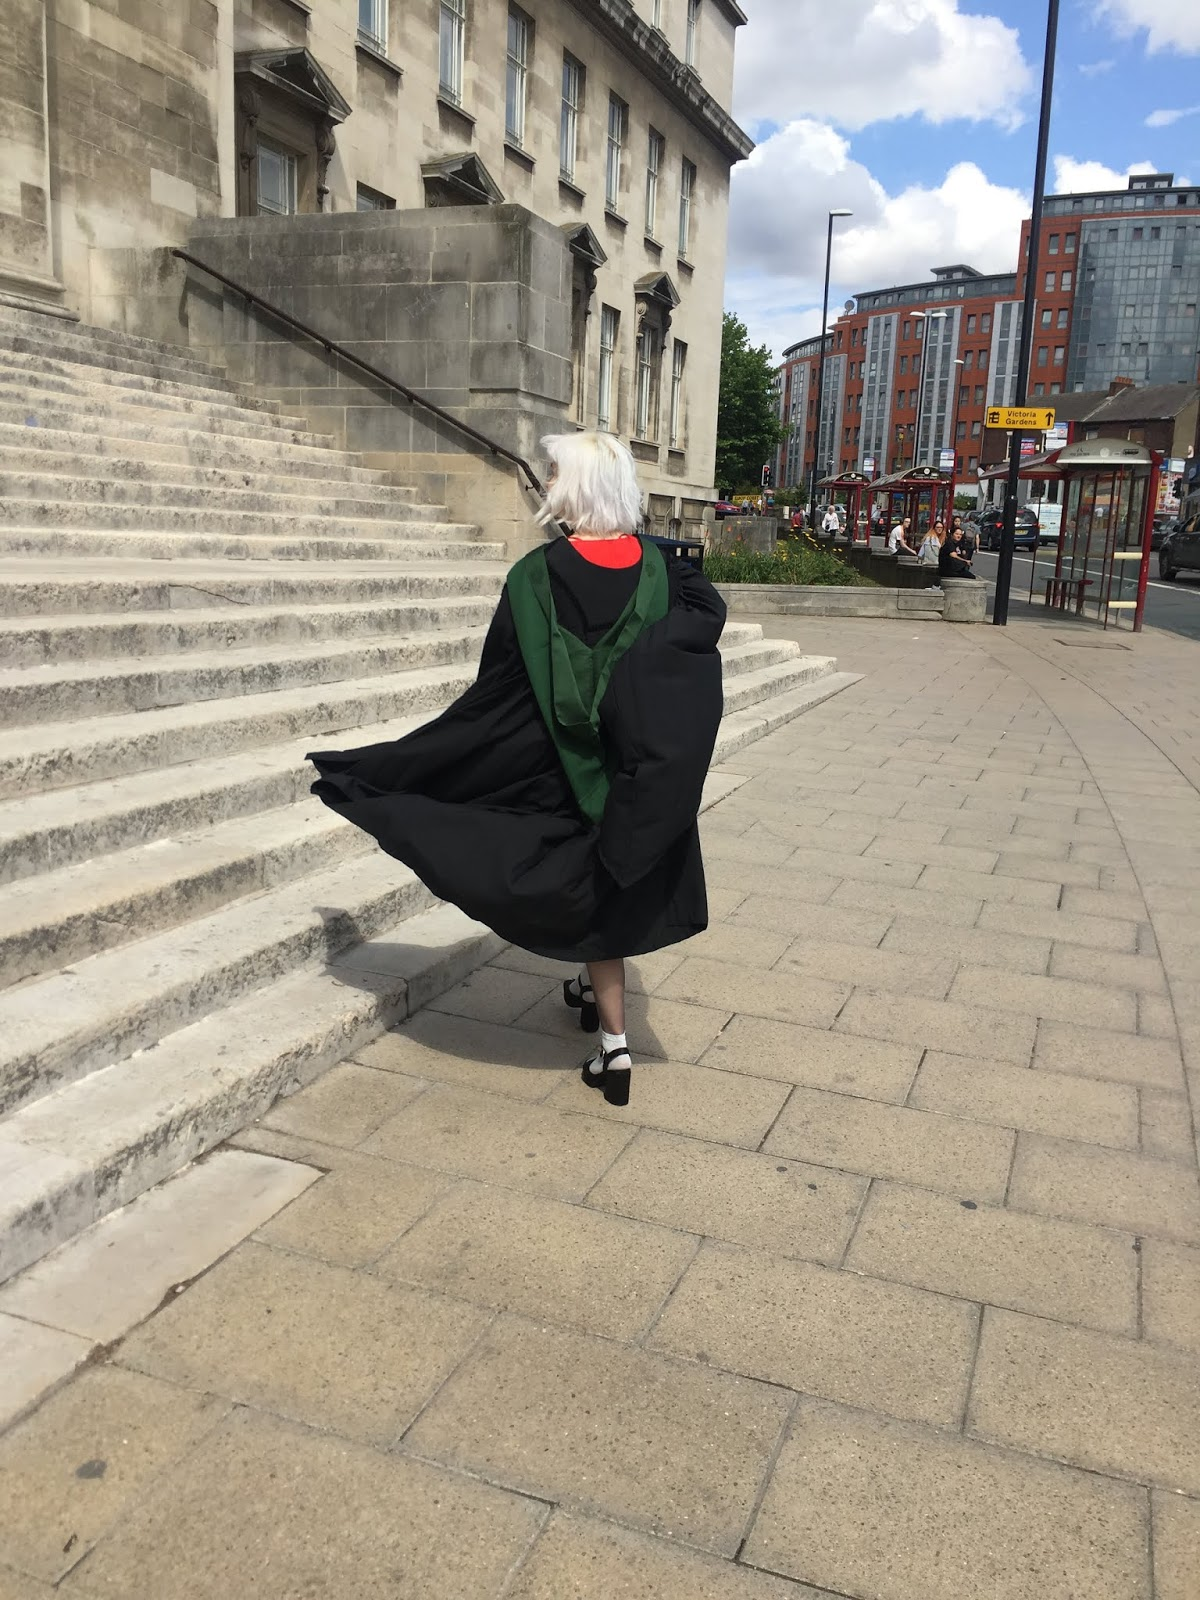 University of Leeds graduate in robes on Parkinson steps